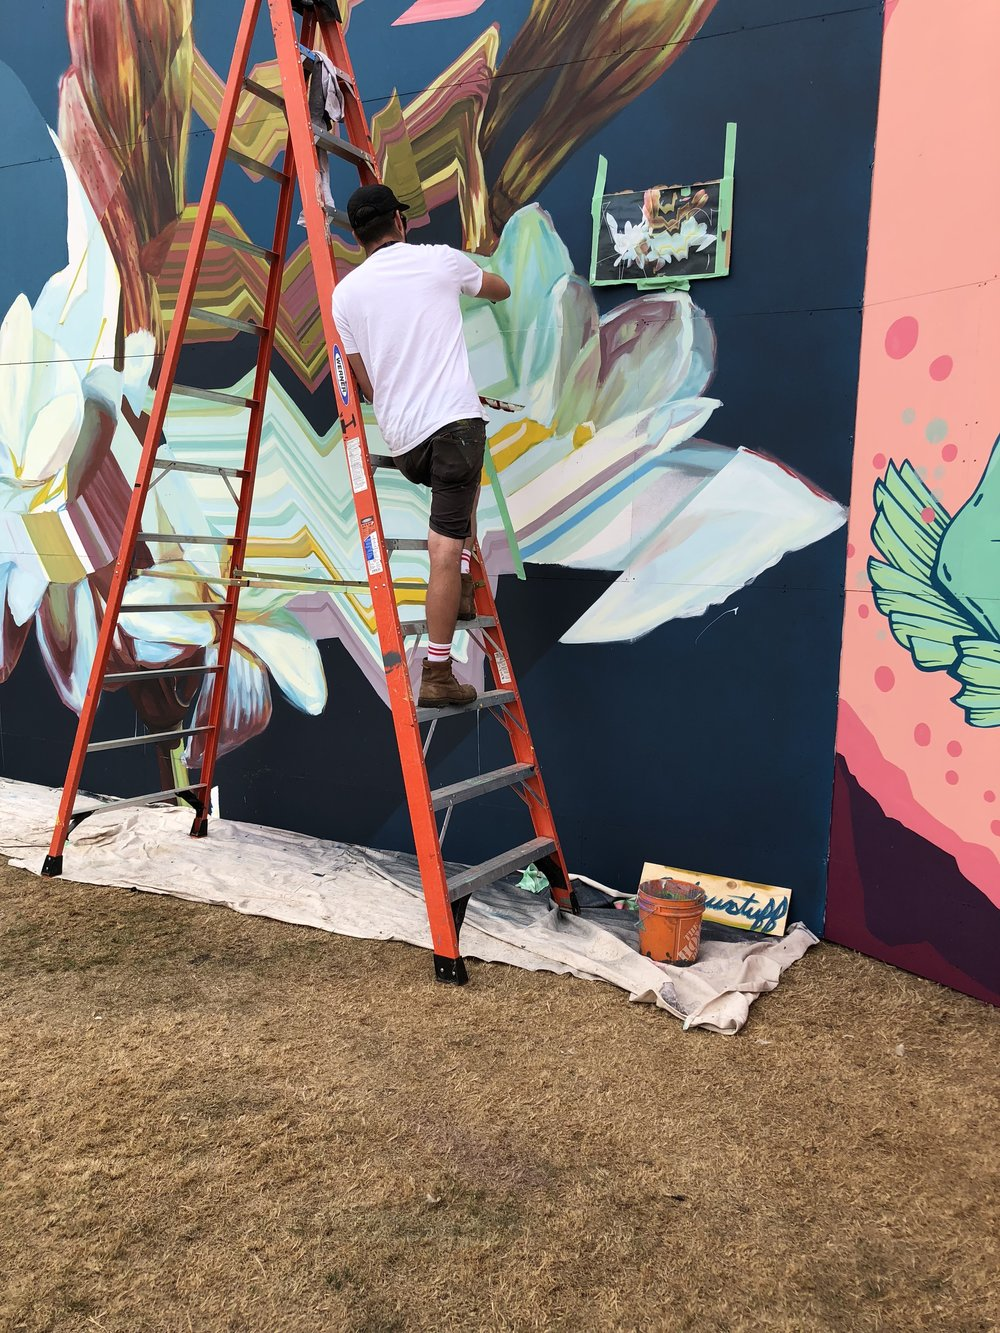 One of the murals being painted